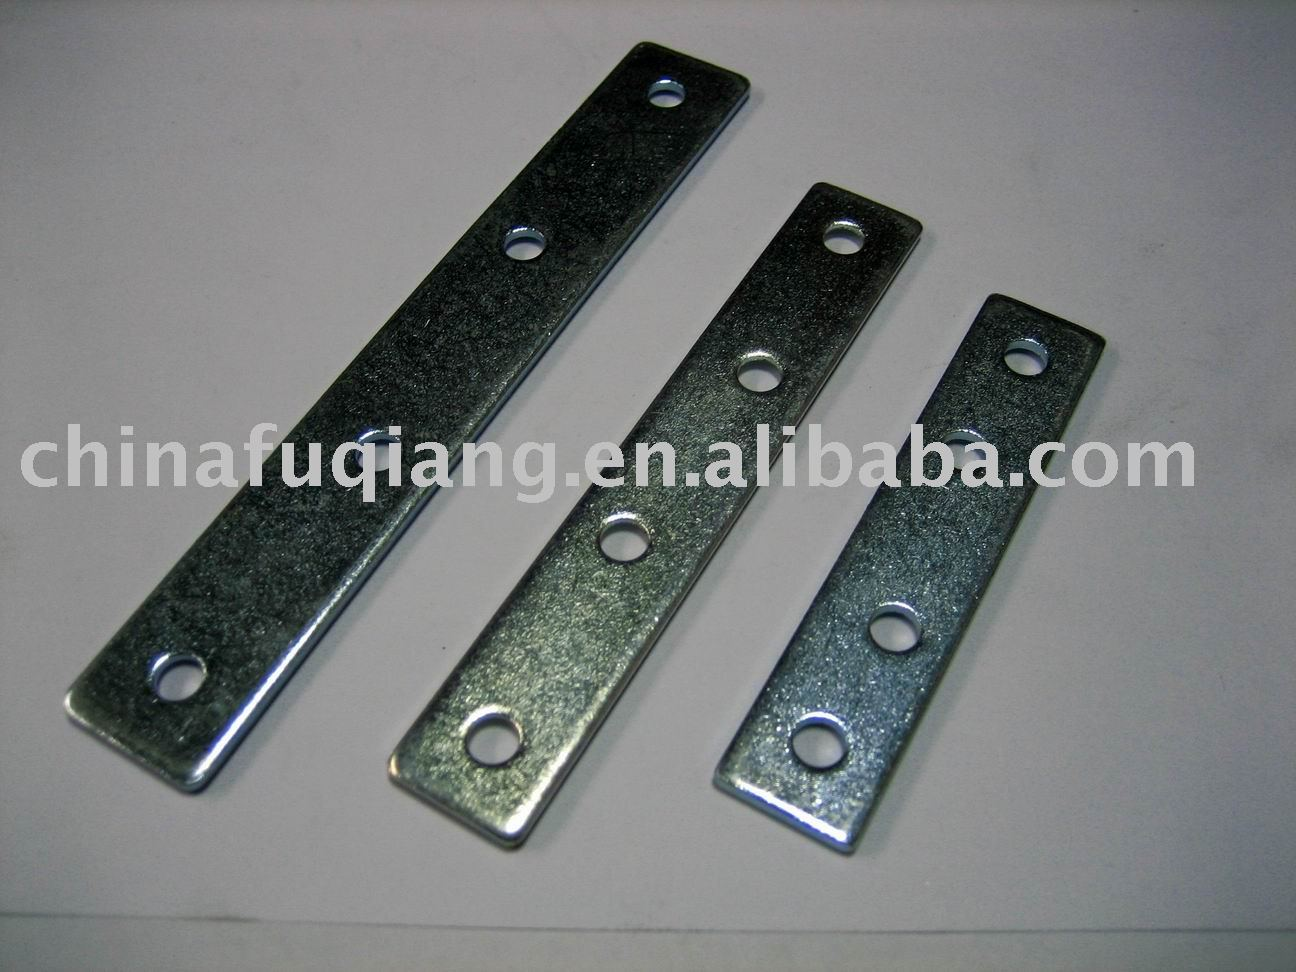 & Mending Plate Mending Plate Suppliers and Manufacturers at Alibaba.com